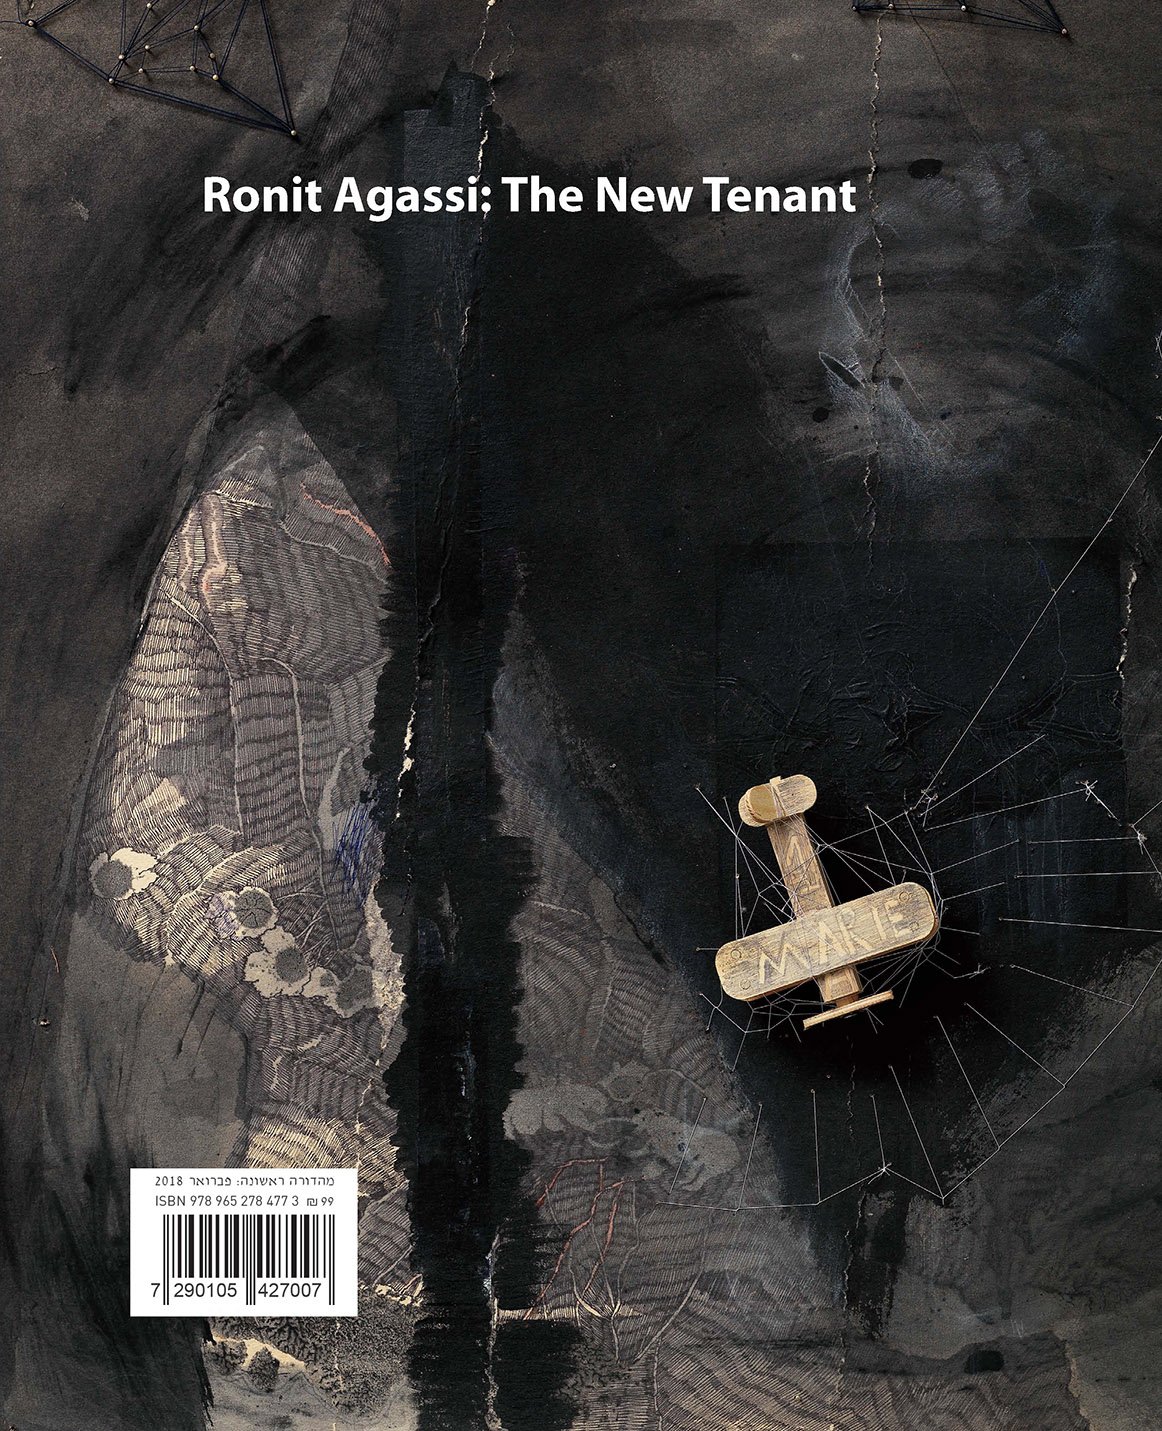 Ronit Agassi: The New Tenant